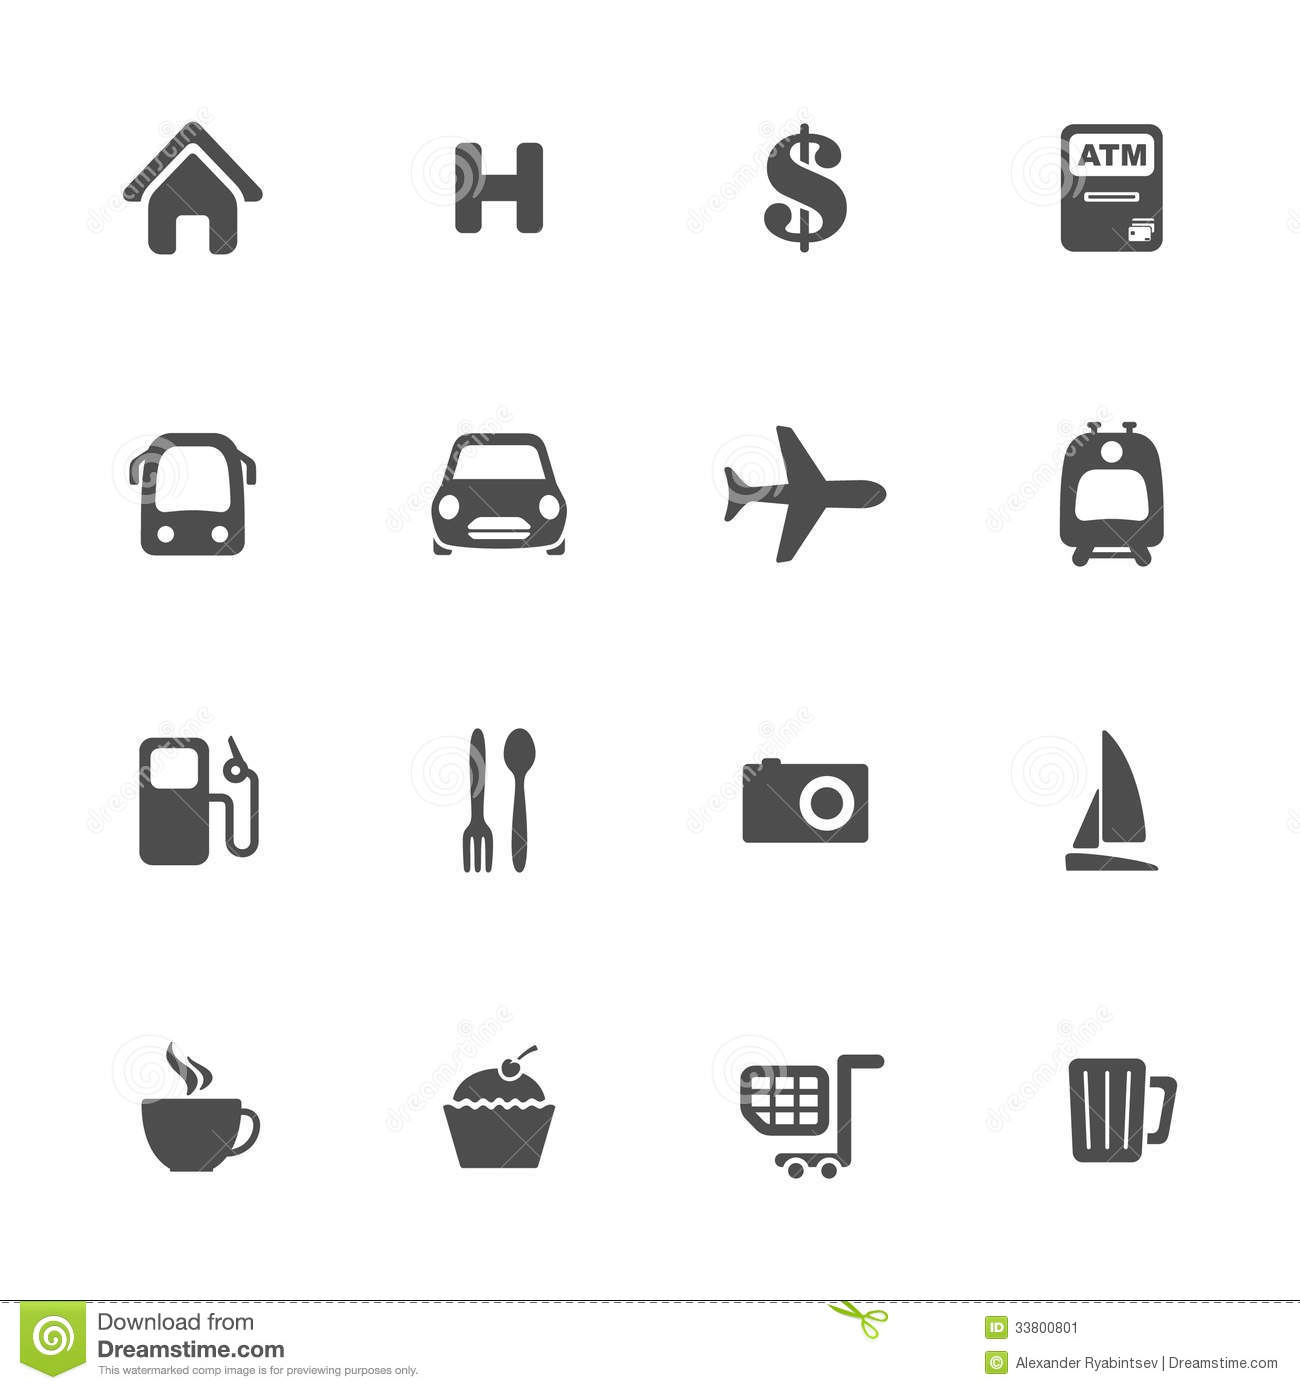 Map navigation icon set stock vector. Illustration of